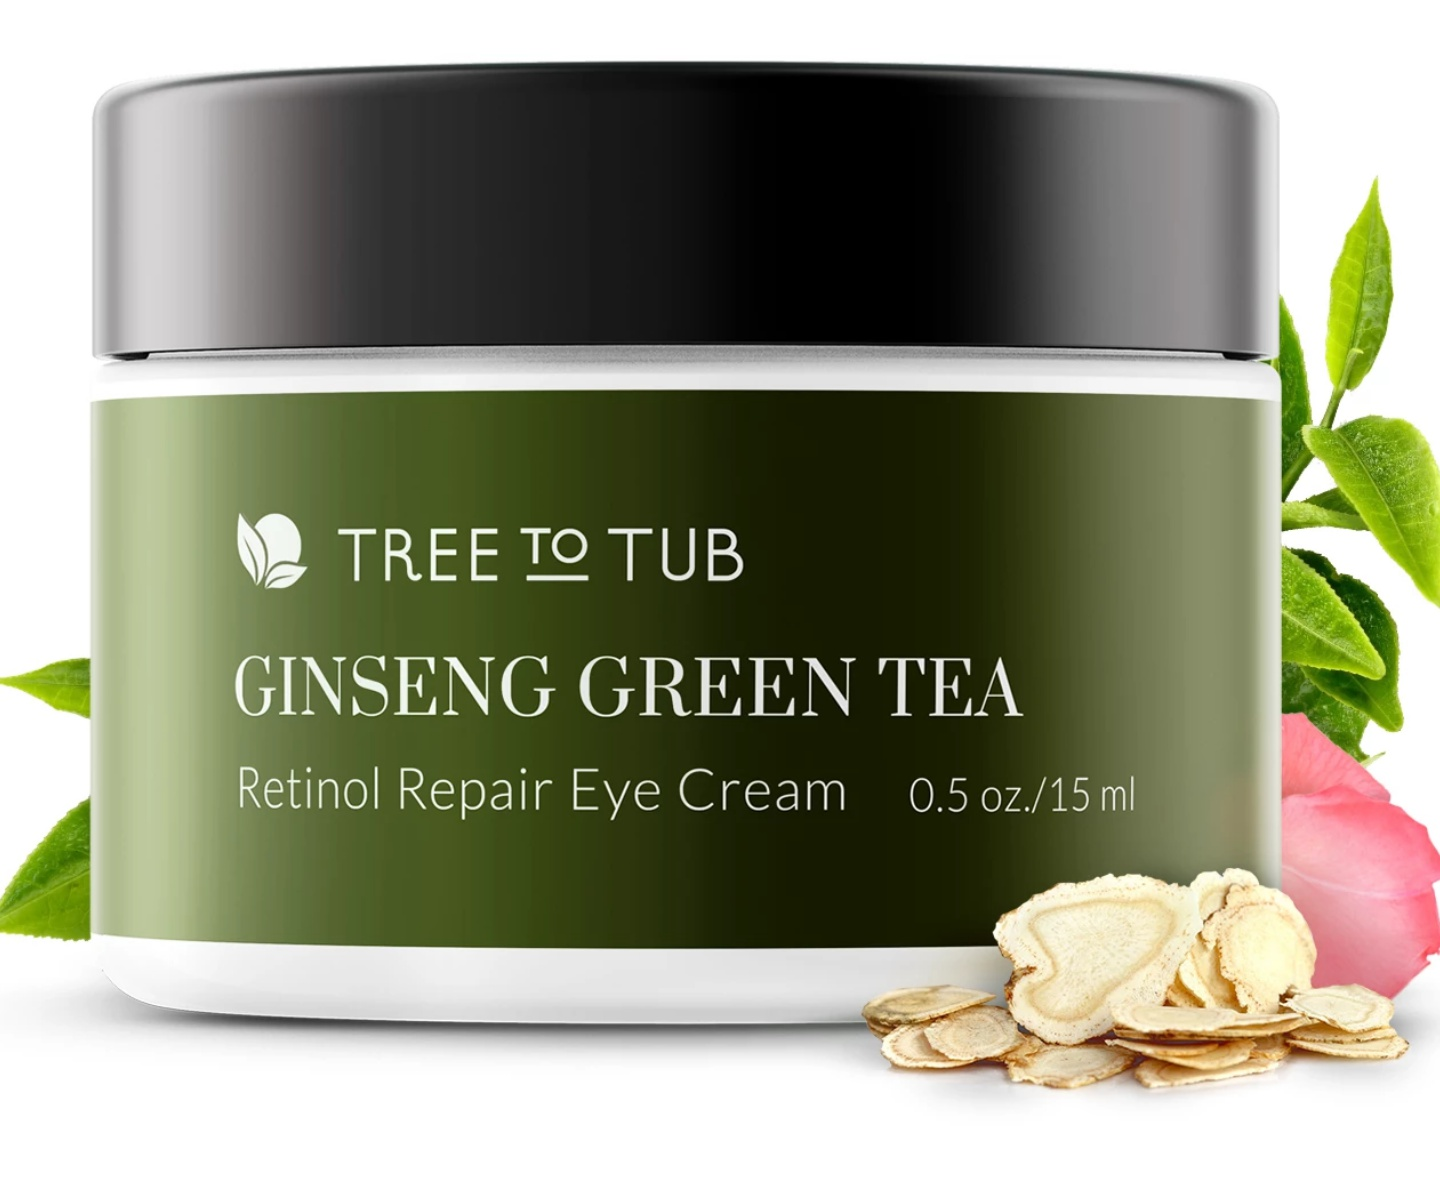 Tree to Tub Ginseng Green Tea Eye Cream With Retinol & Hyaluronic Acid